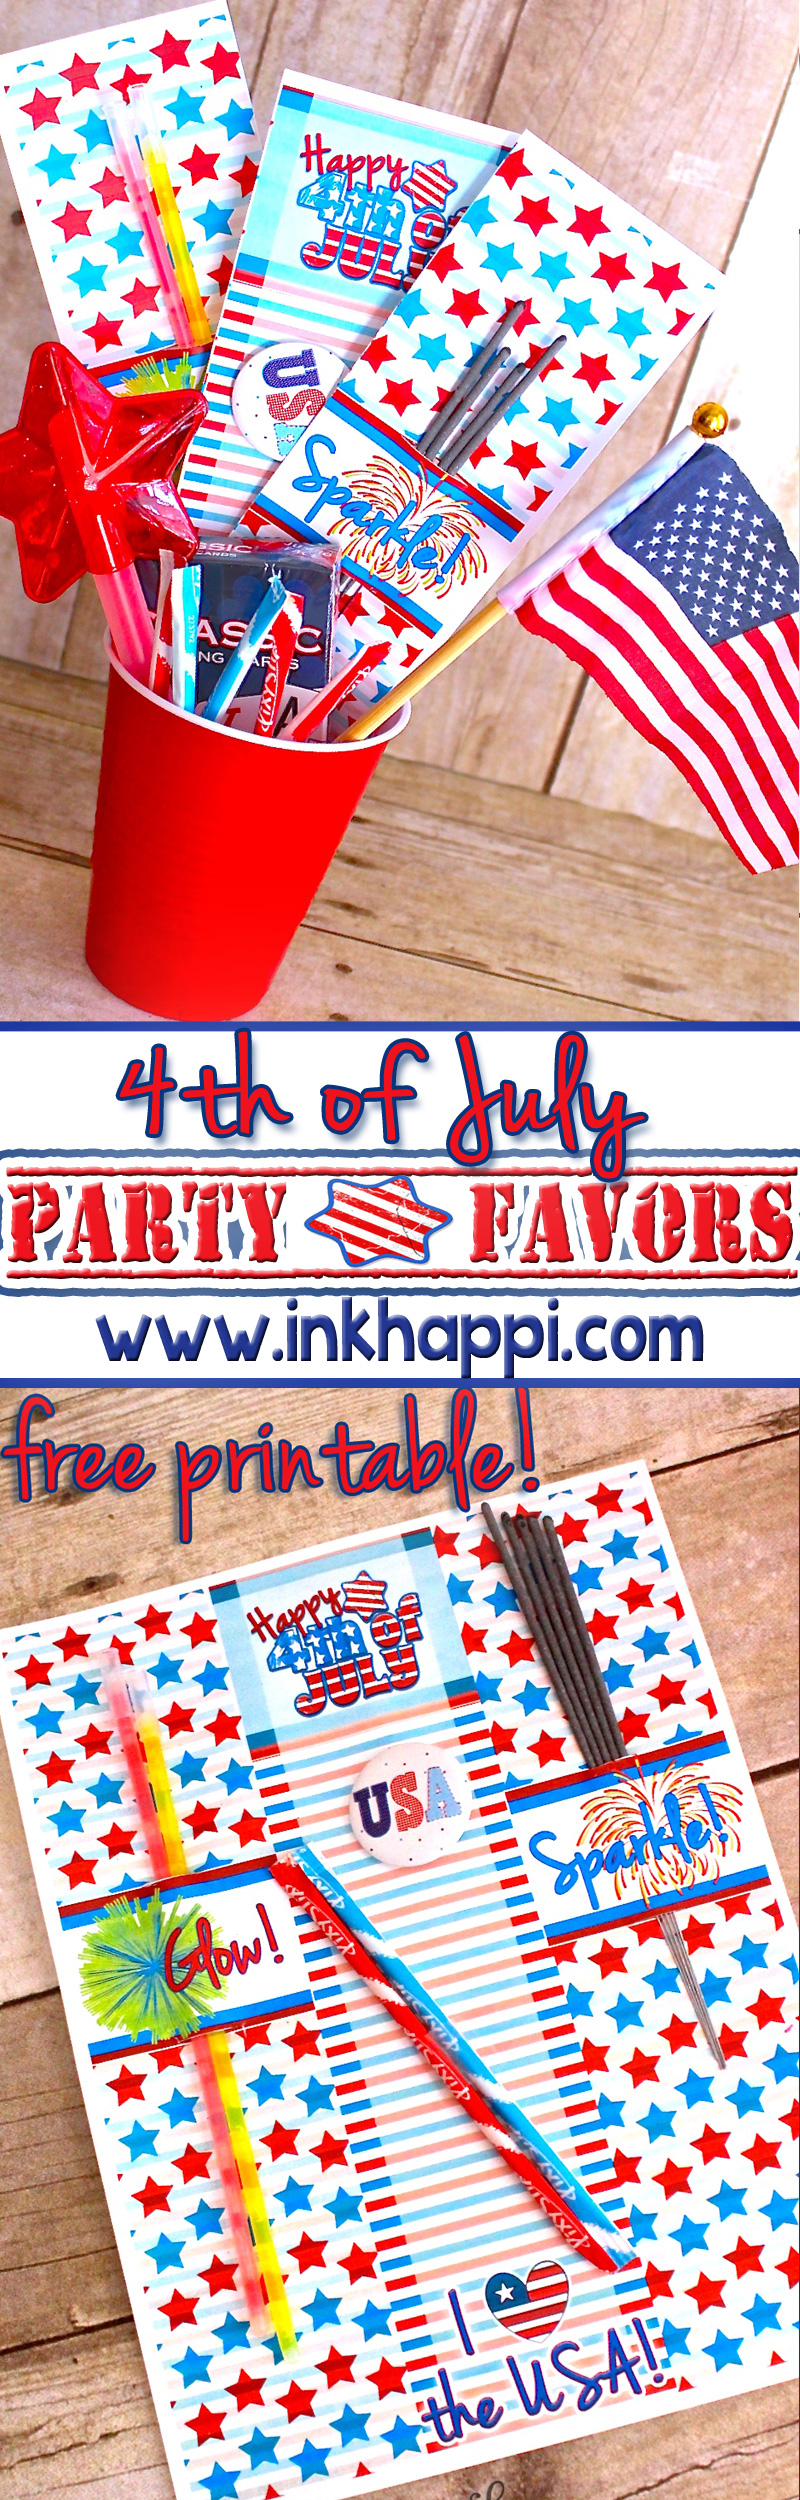 4th of july party favors long